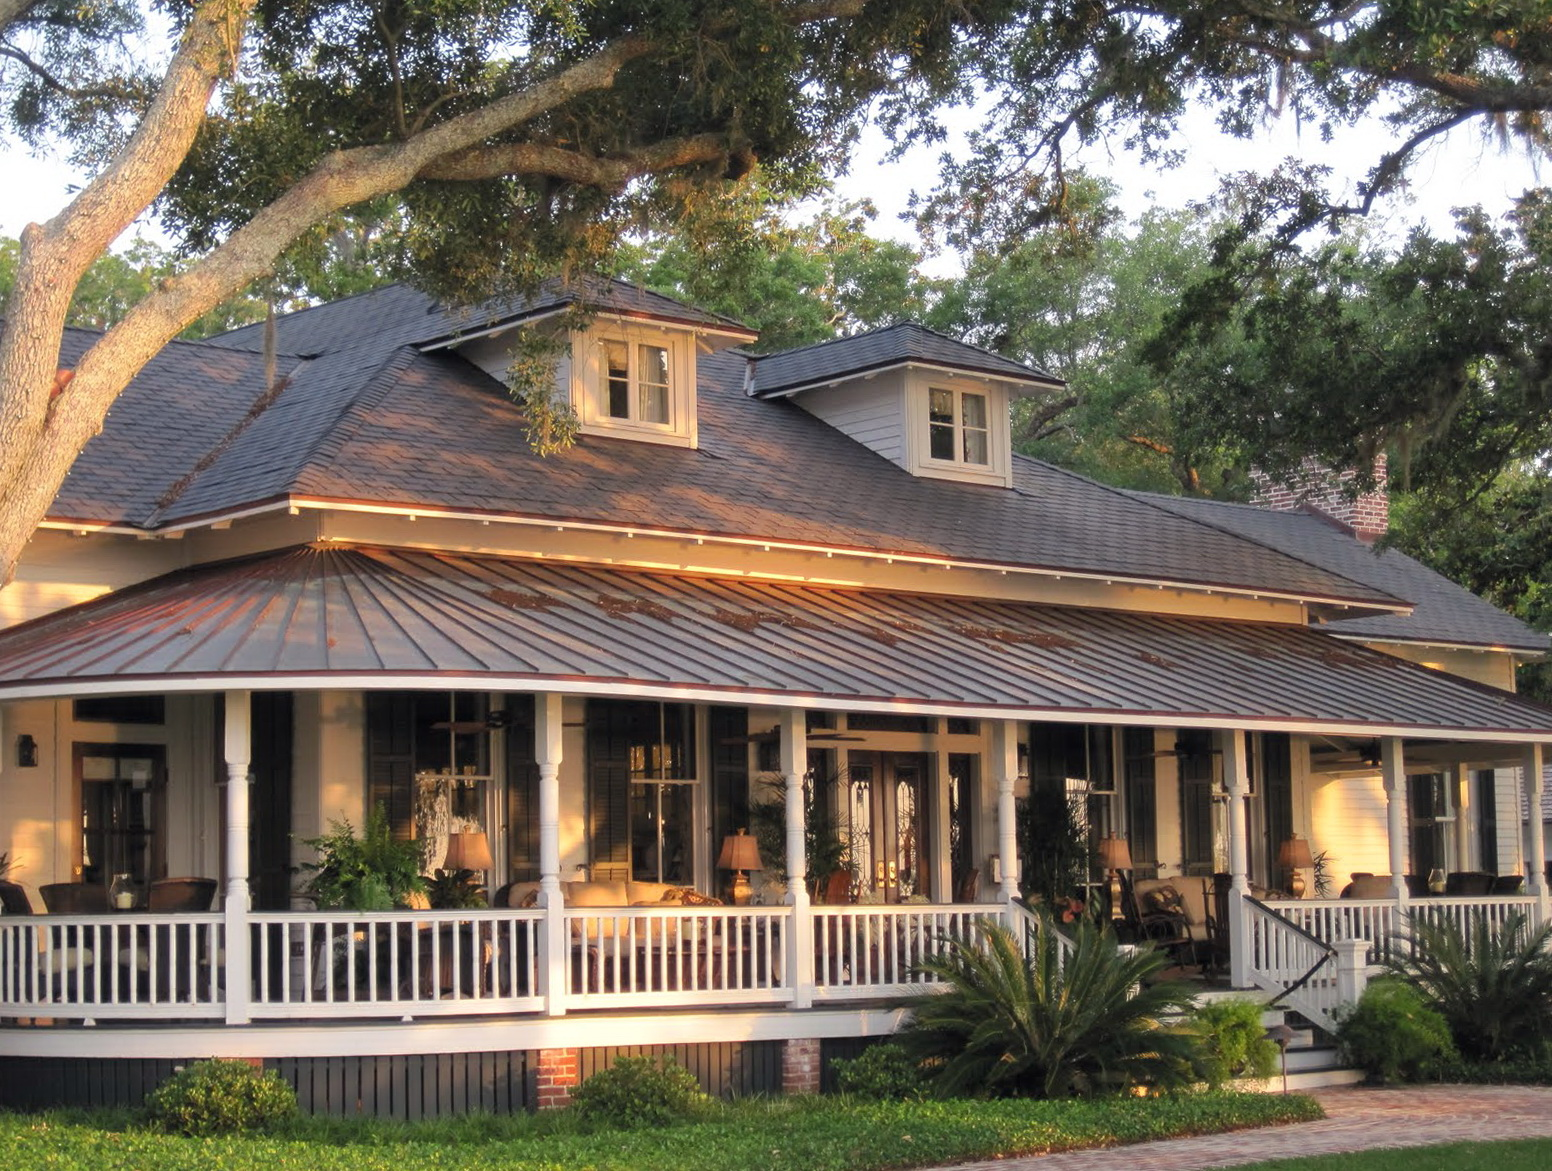 Country Home With Wrap Around Porch Plans